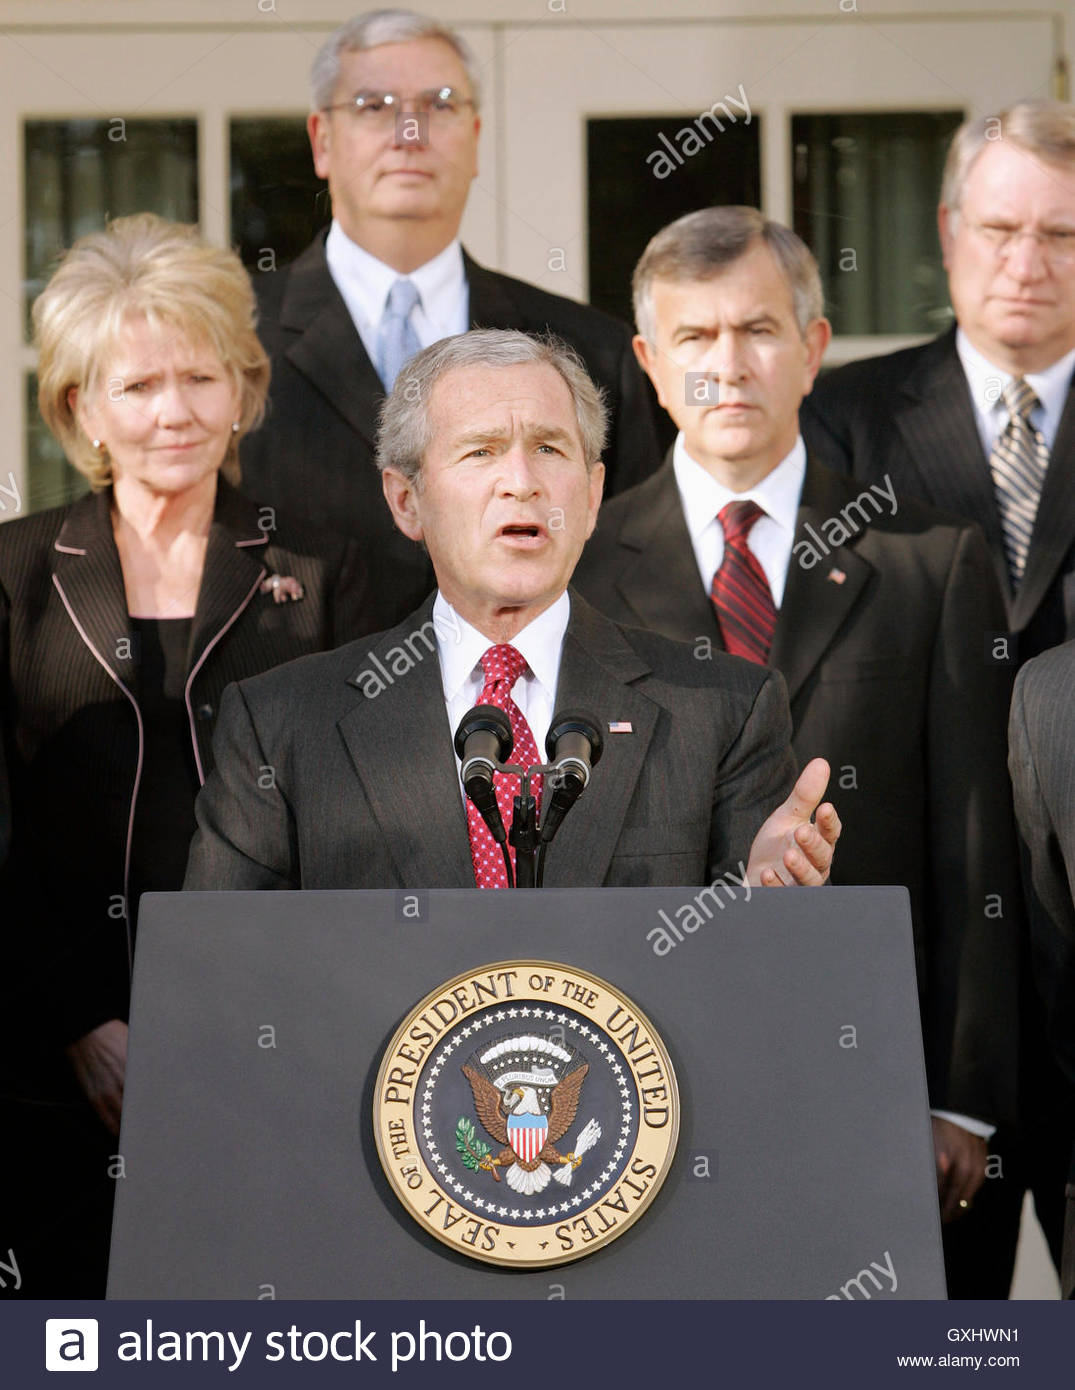 The Press Cabinet Us President George W Bush C Speaks To The Press With His